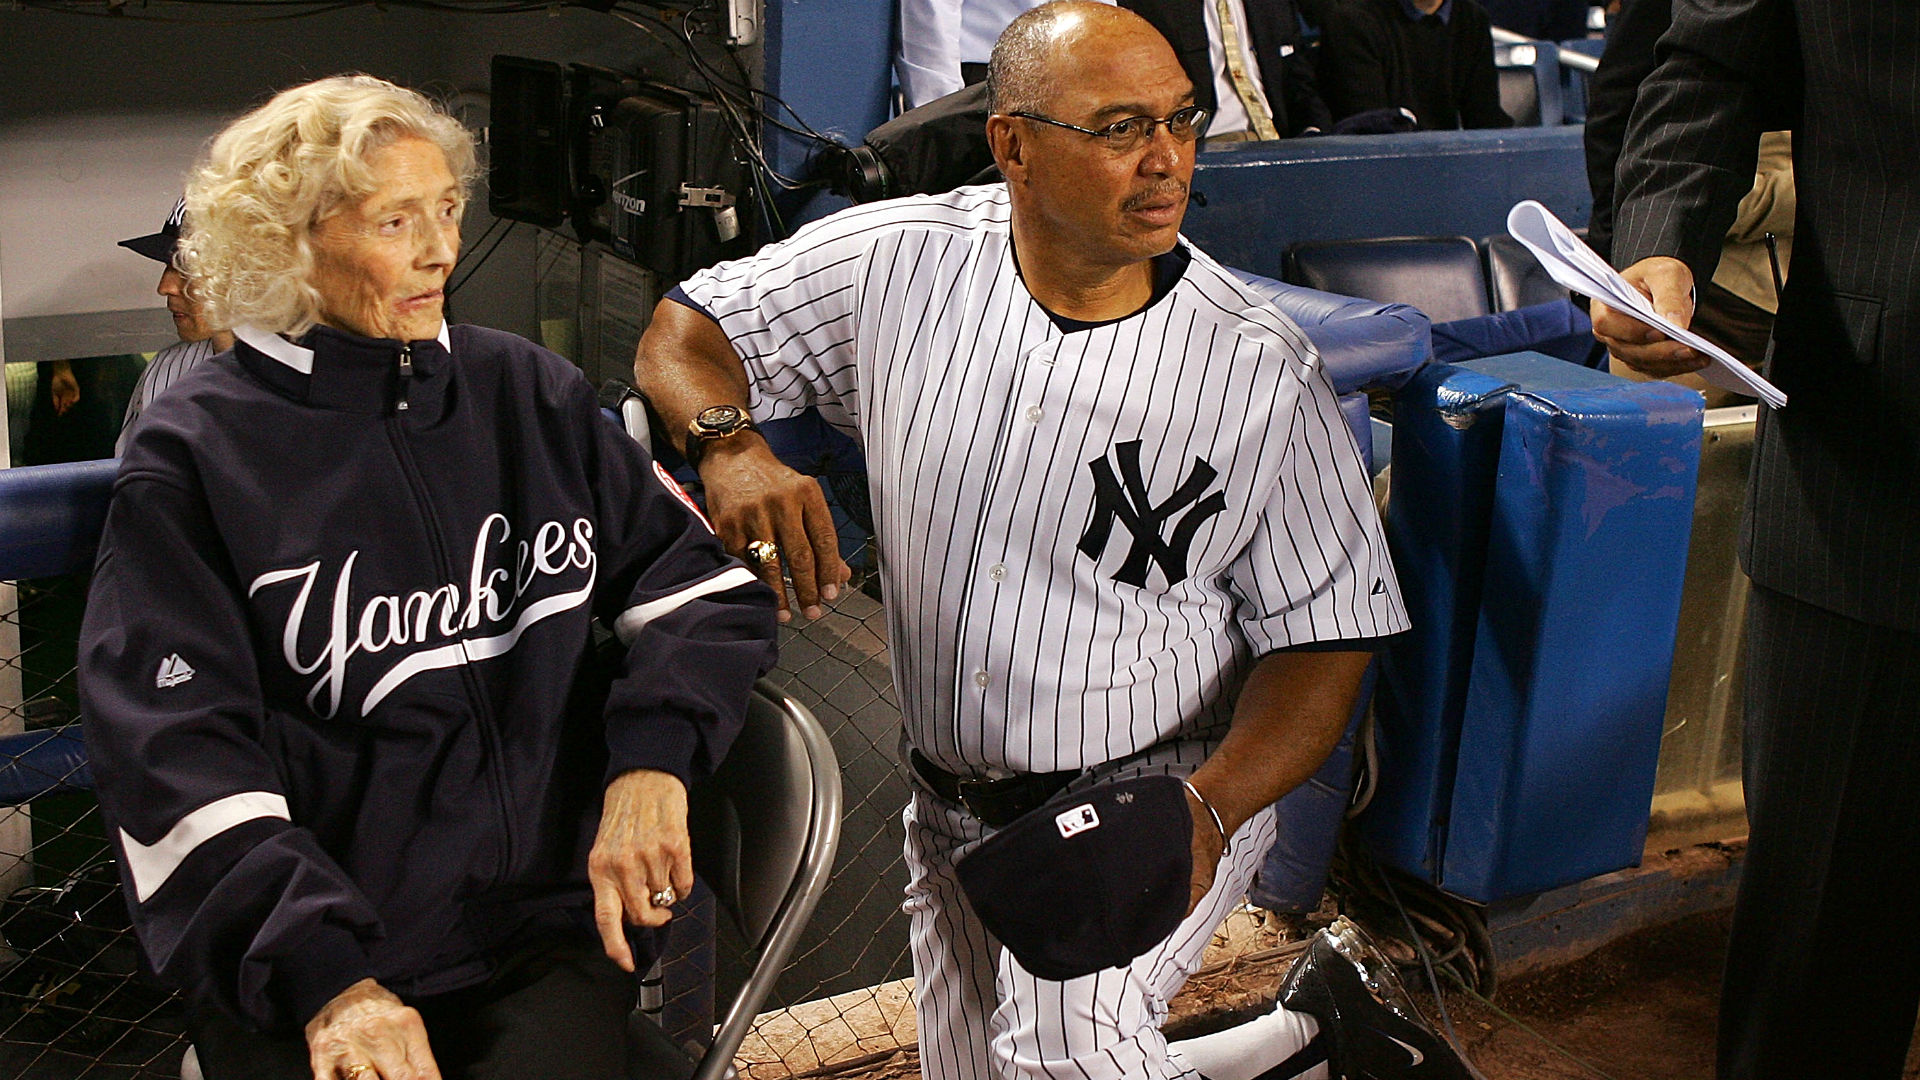 Babe Ruth's Daughter Passes Away at 102 Years Old